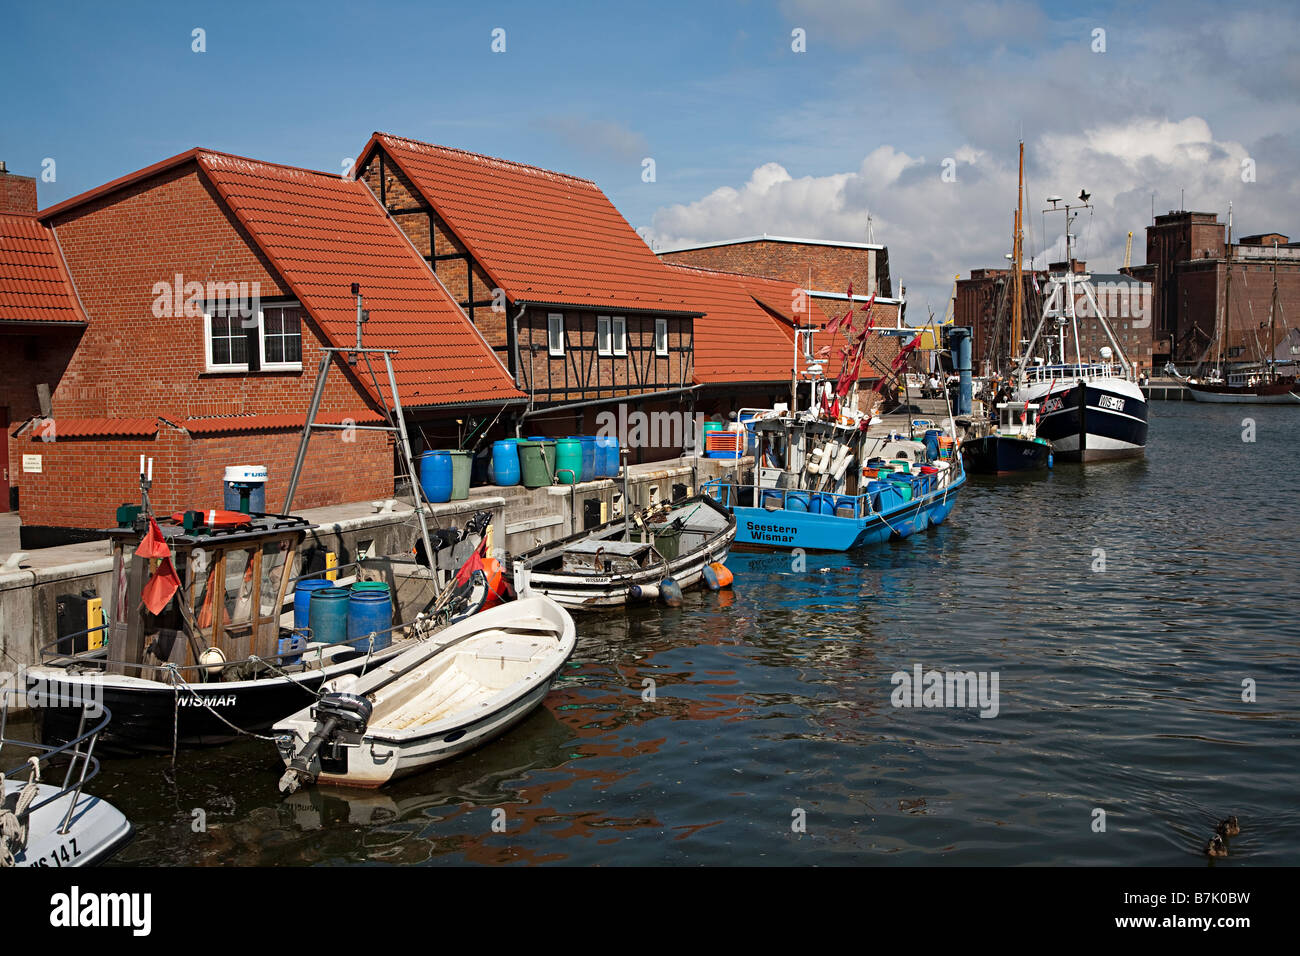 Houses on harbour front Wismar Germany - Stock Image